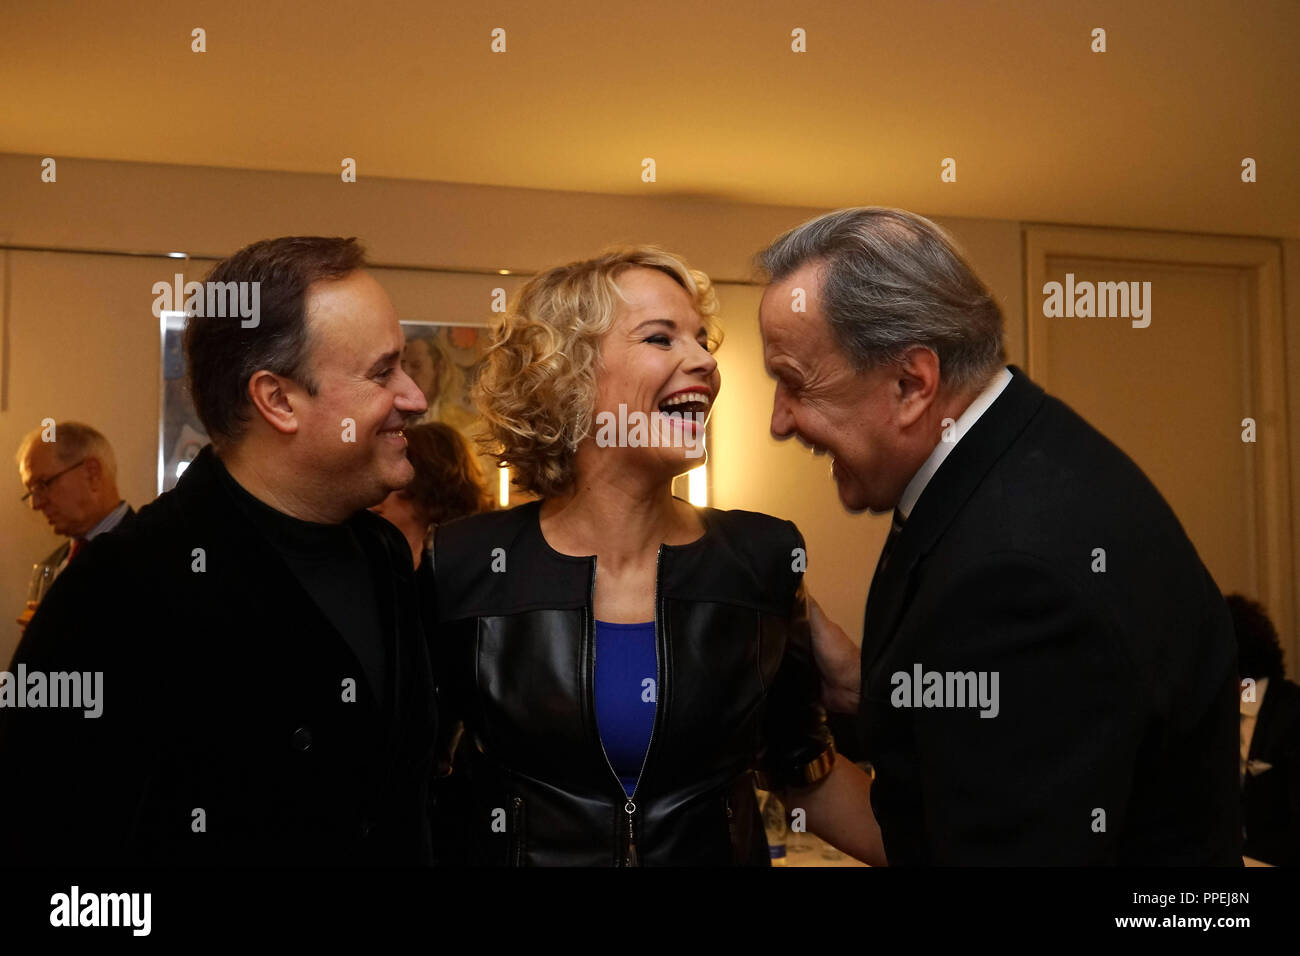 From left: conductor Karel Mark Chichon, the mezzo-soprano Elina Garanca and State Opera director Nikolaus Bachler celebrate in the hotel 'Bayerischer Hof' following the premiere of the Donezetti opera 'La Favorite' in the Bavarian State Opera. - Stock Image